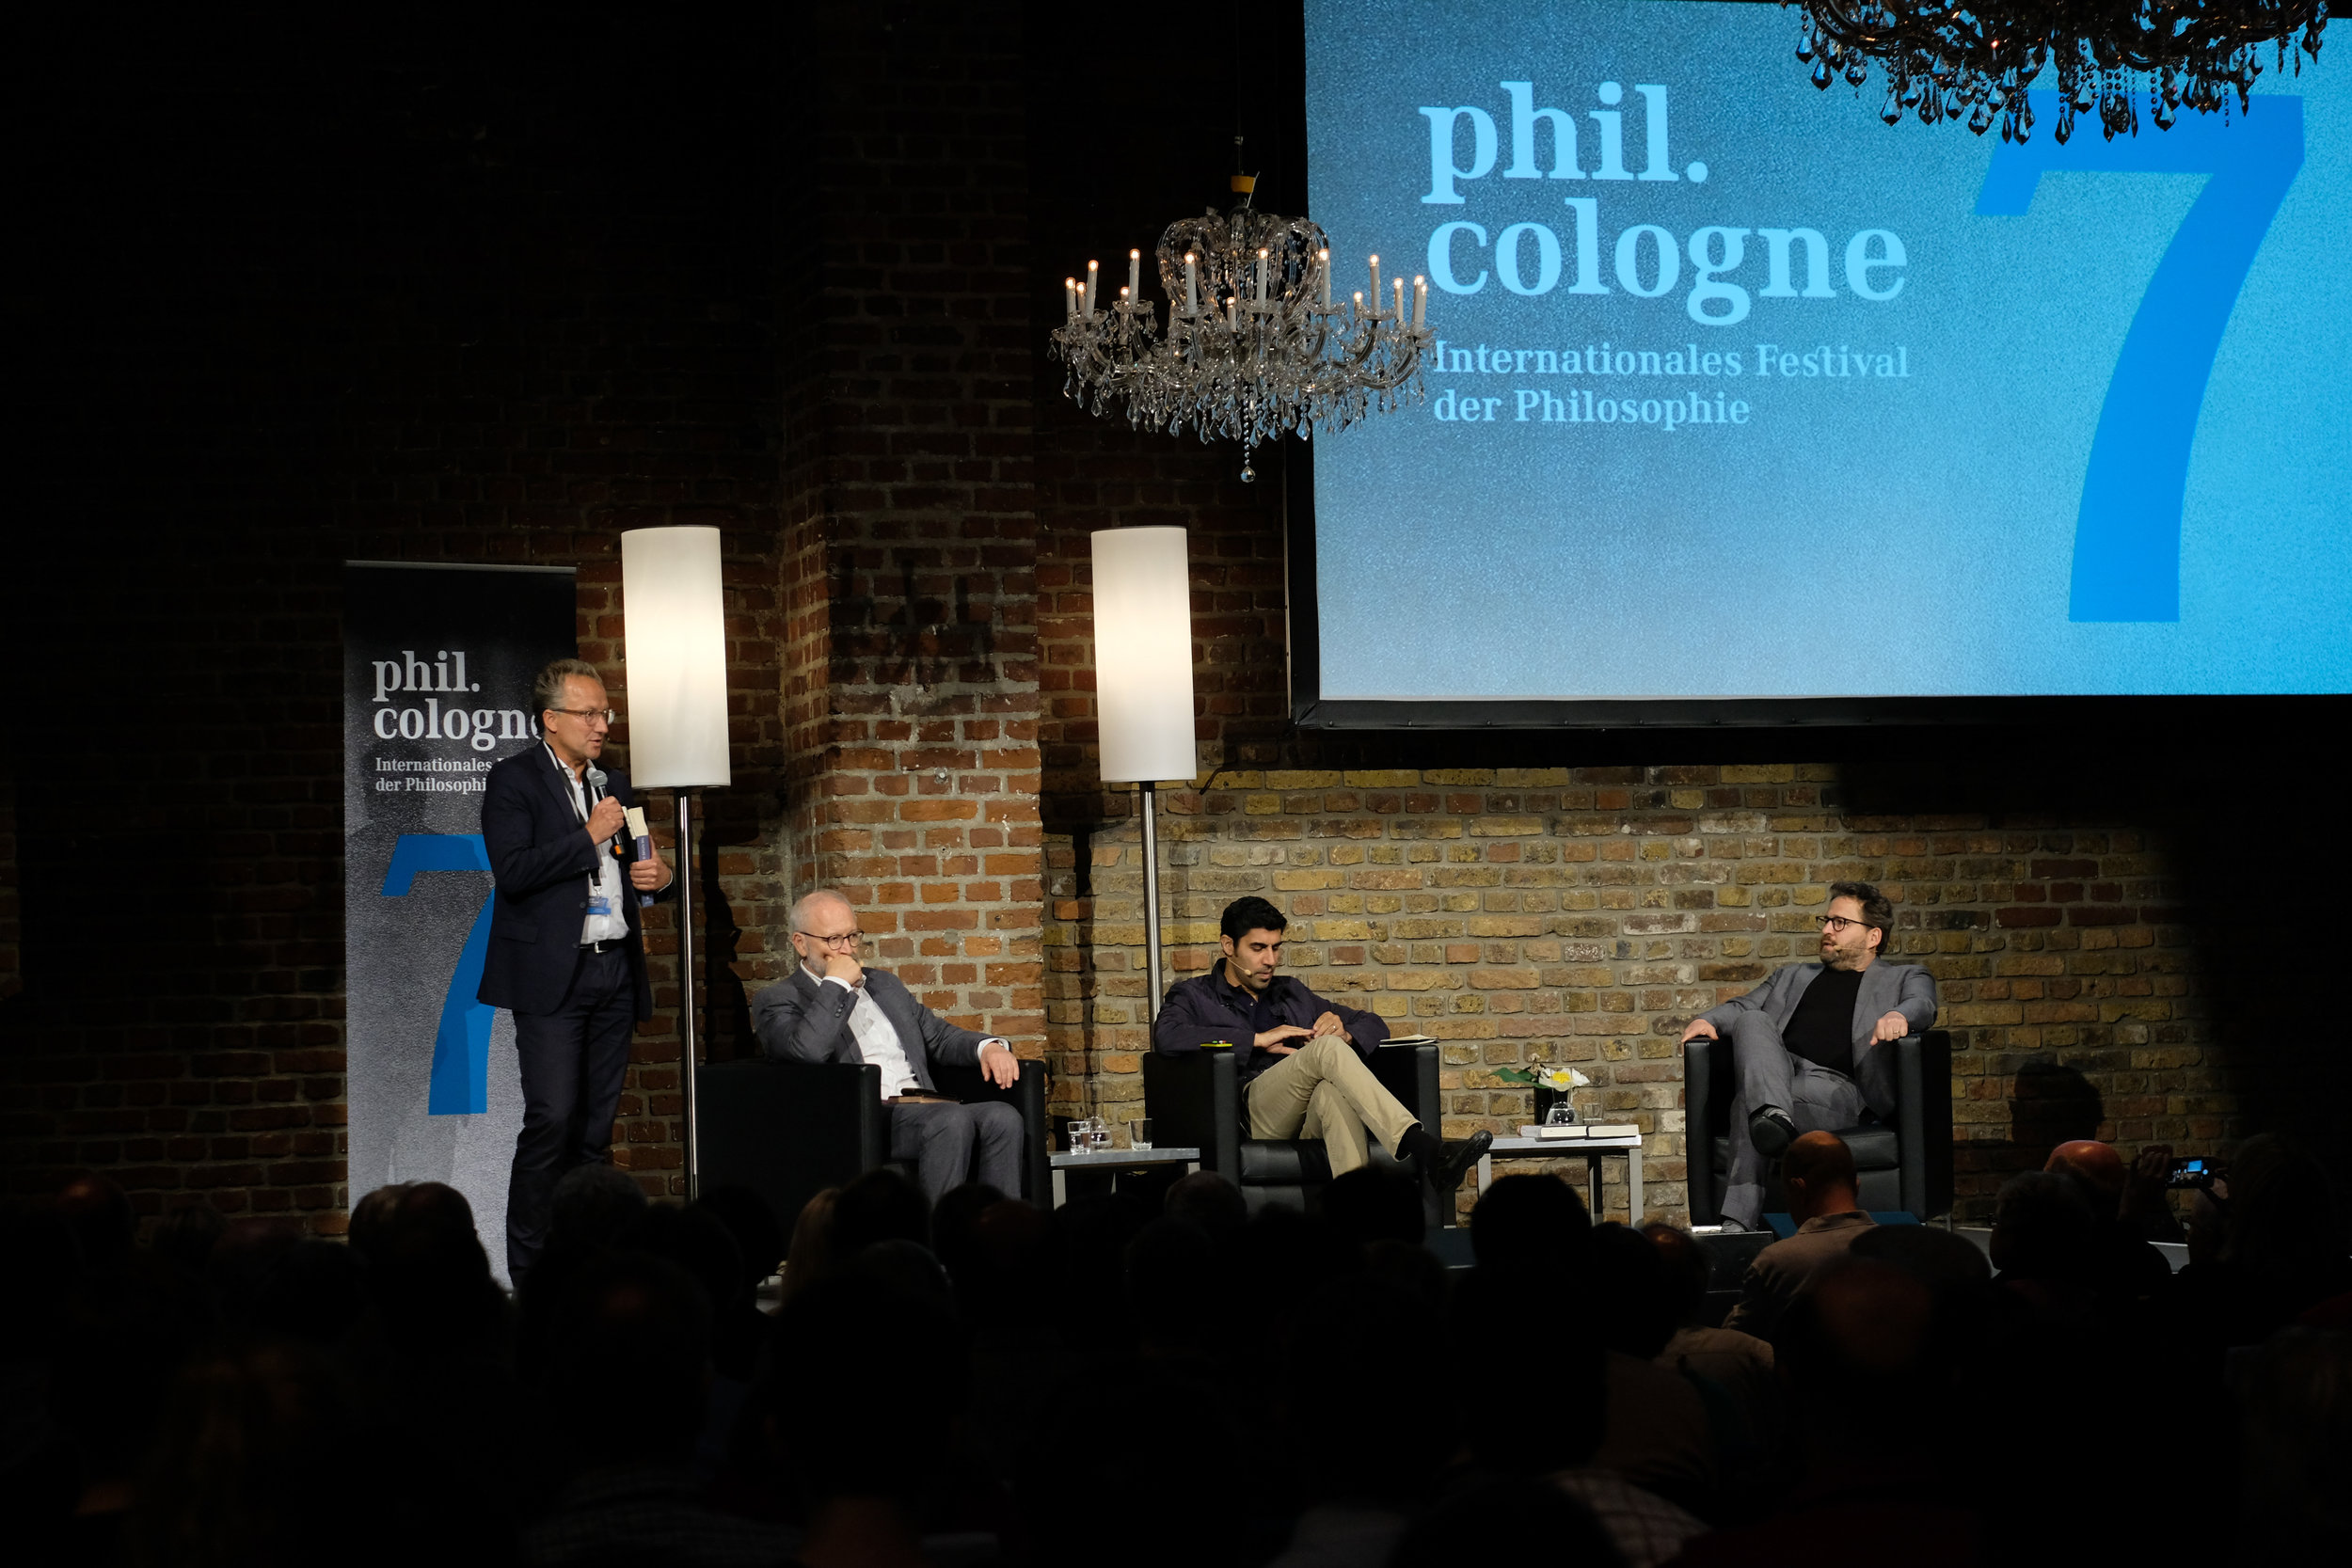 phil.cologne7_01369.jpg